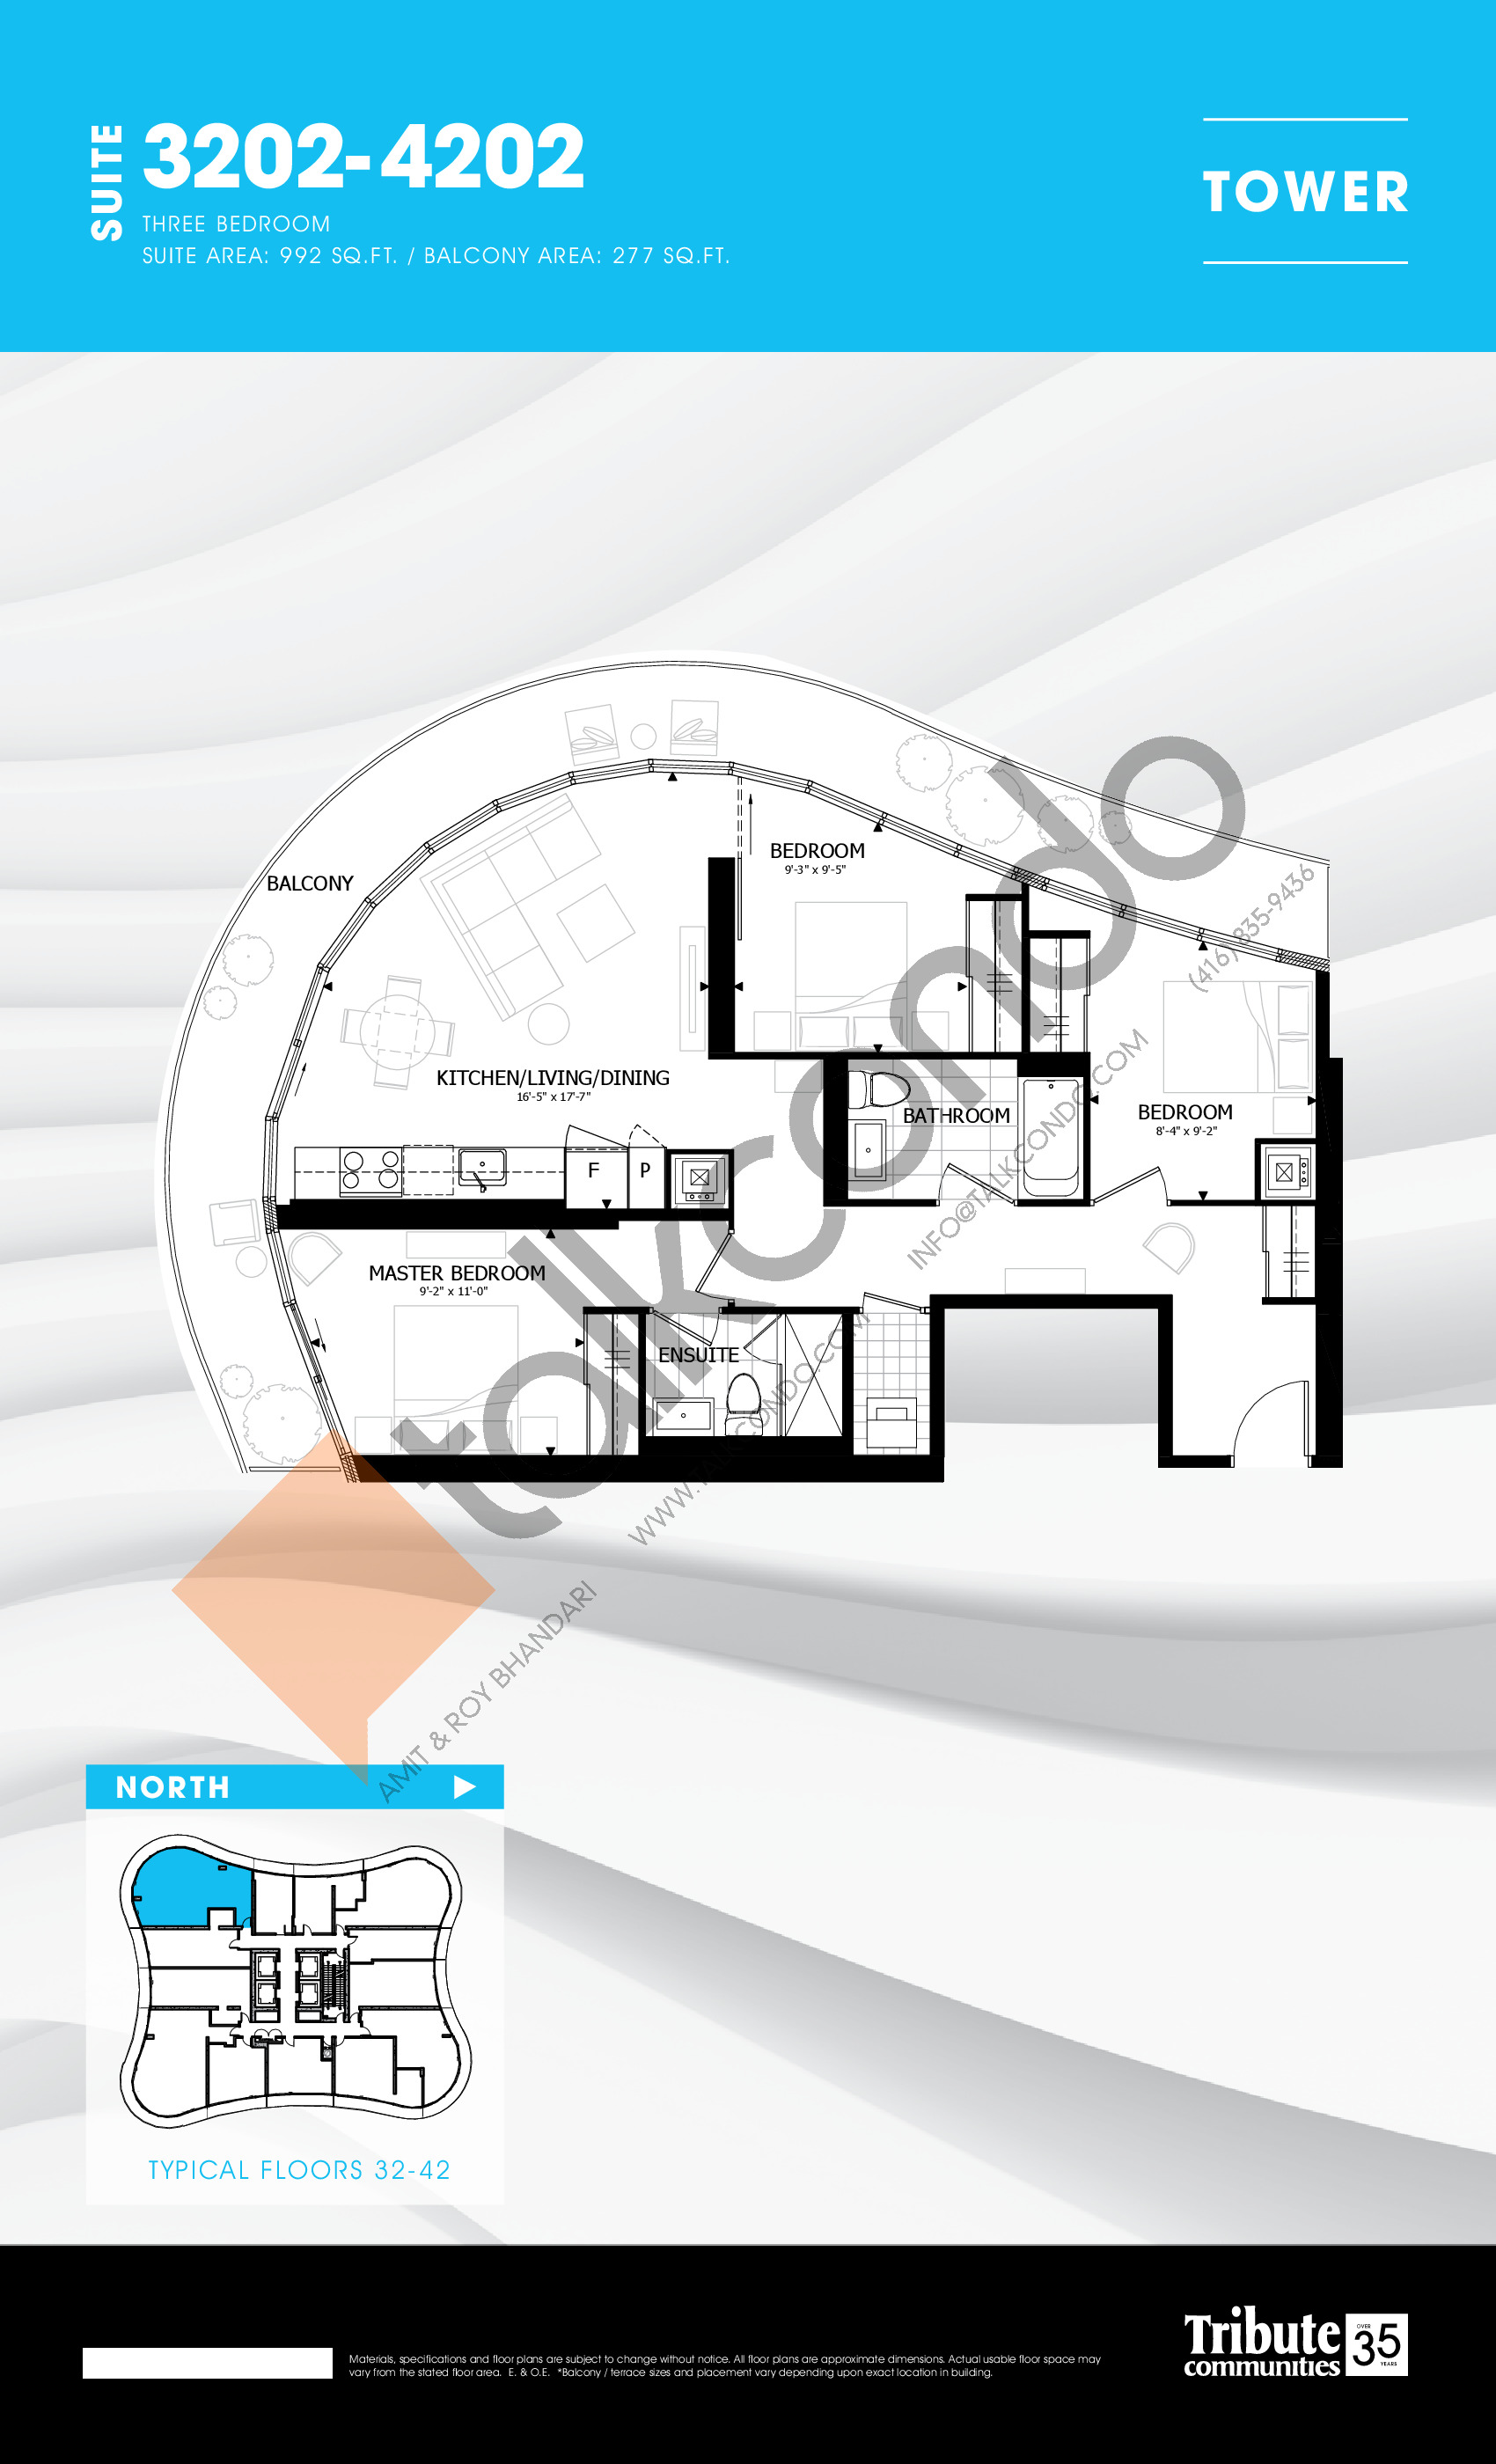 3202-4202 Floor Plan at Stanley Condos - 992 sq.ft